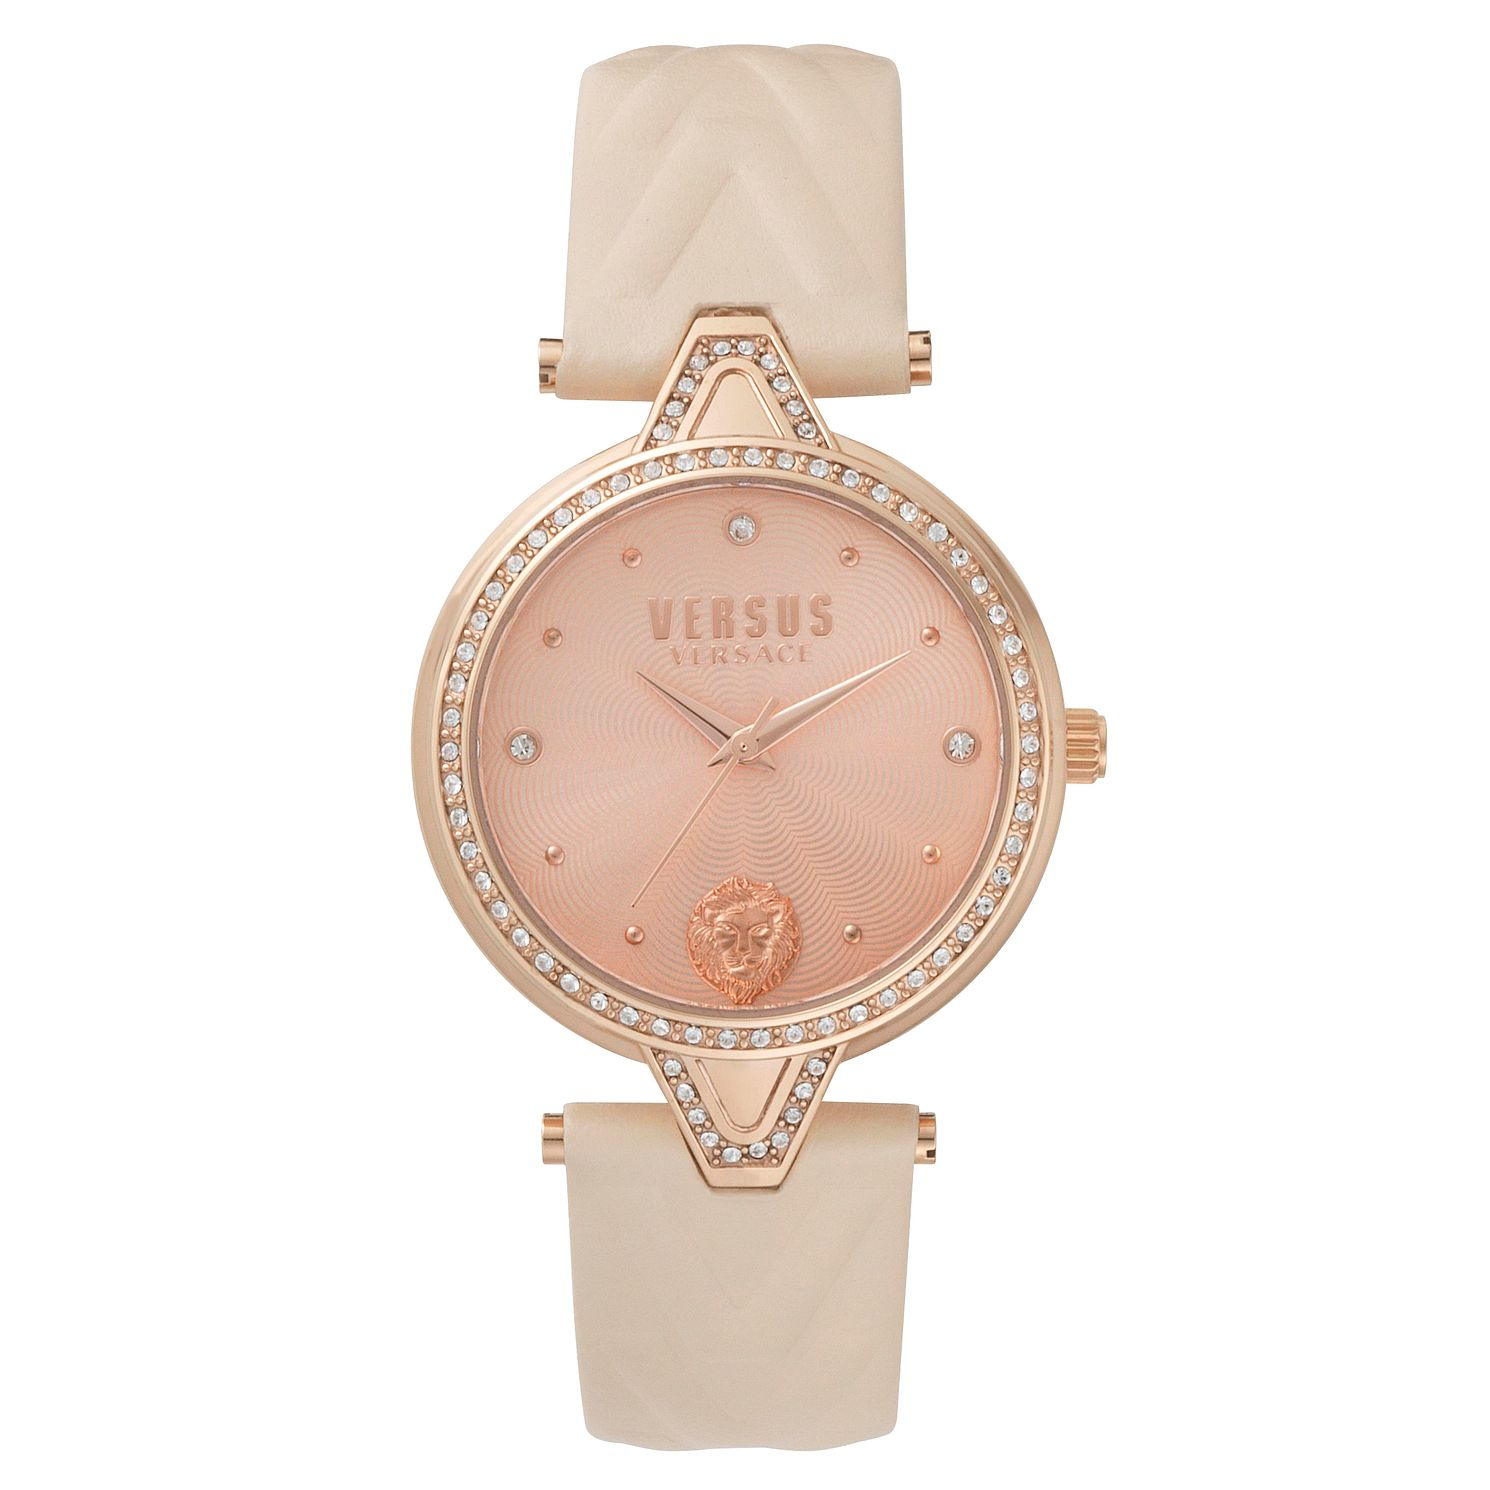 Versus Versace Ladies' Rose Gold Leather Strap Watch - Product number 8391459